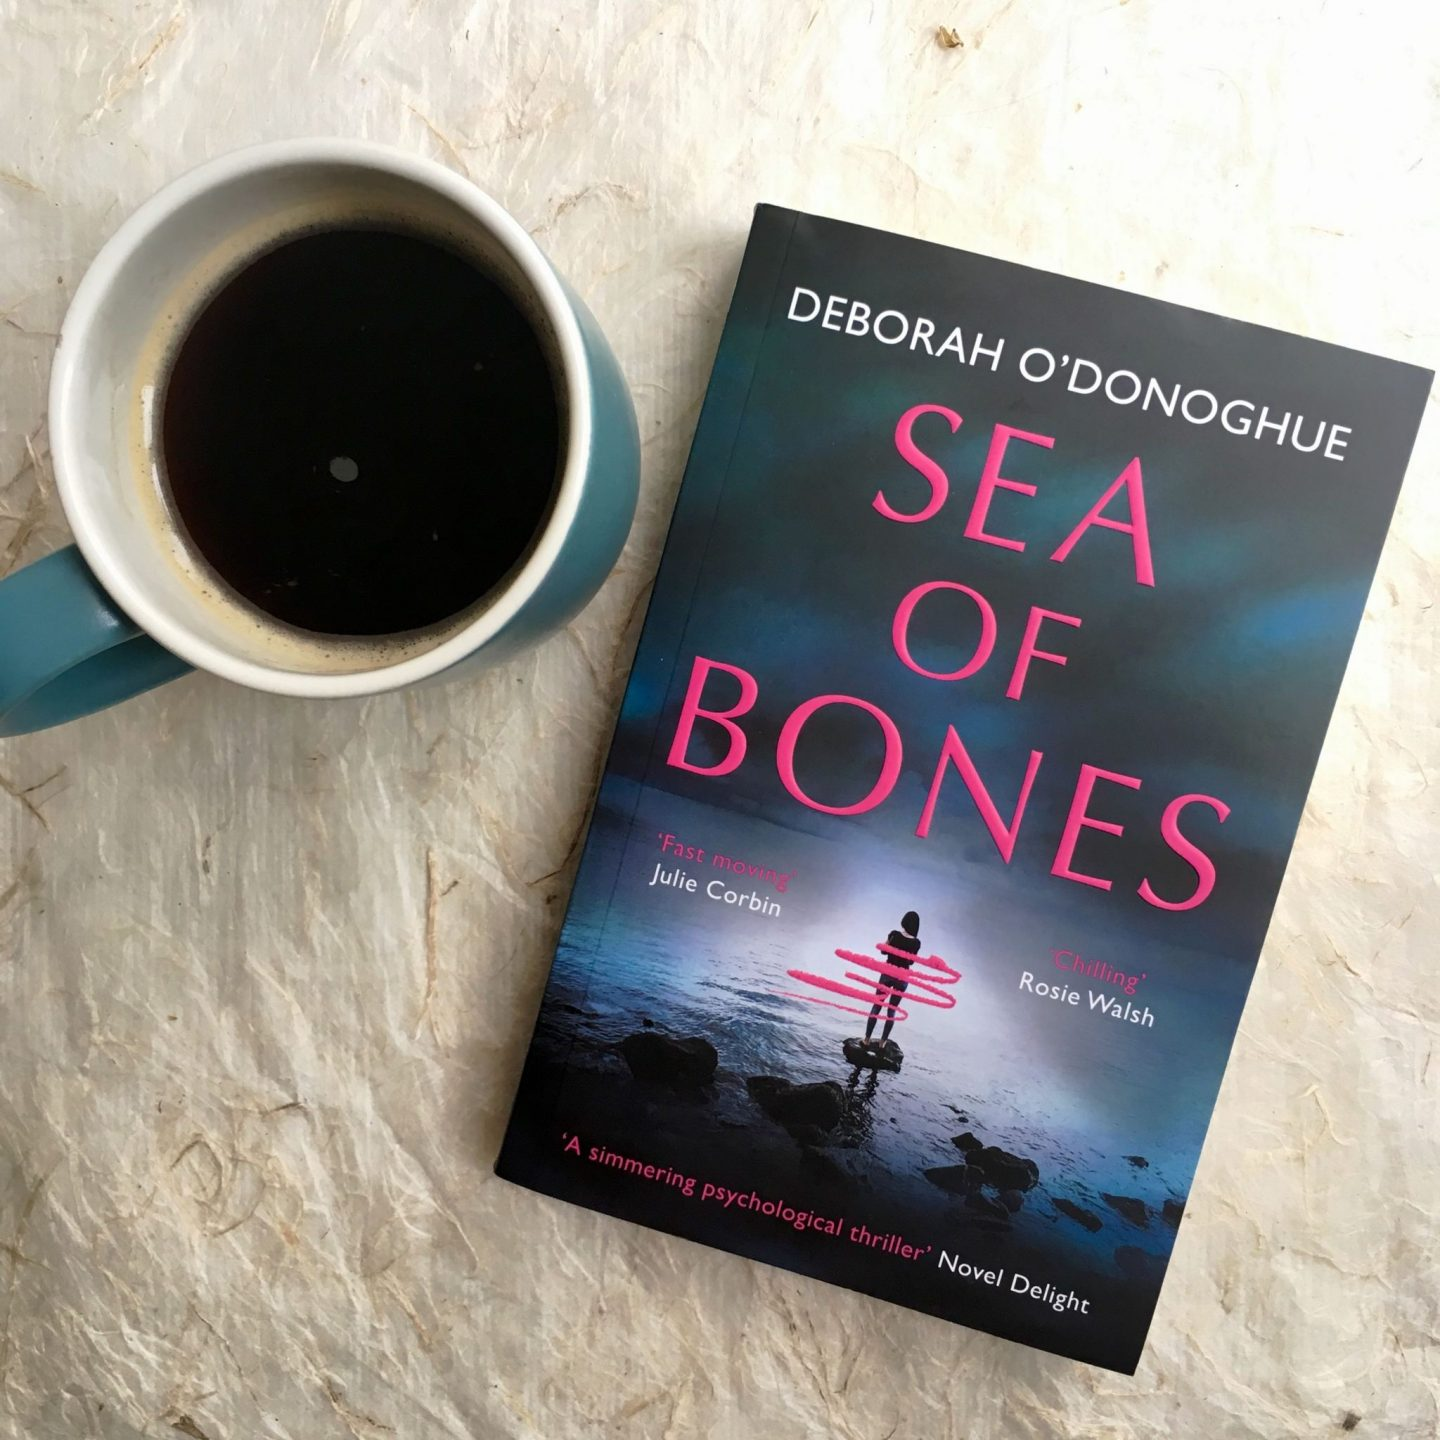 Sea of Bones; a simmering psychological thriller